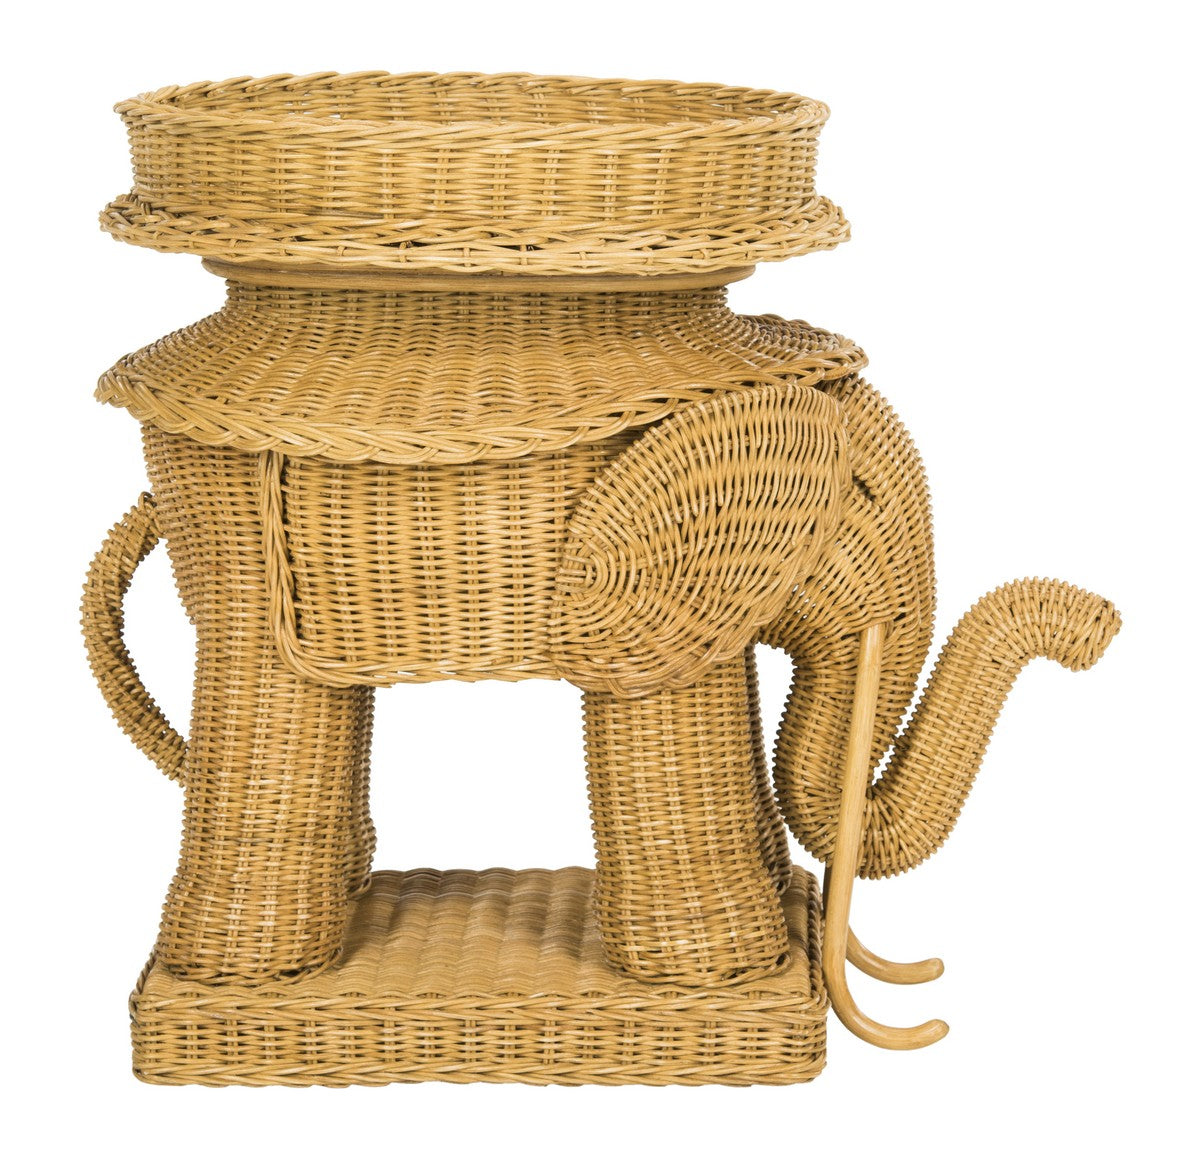 Jaipur Wicker Side Table